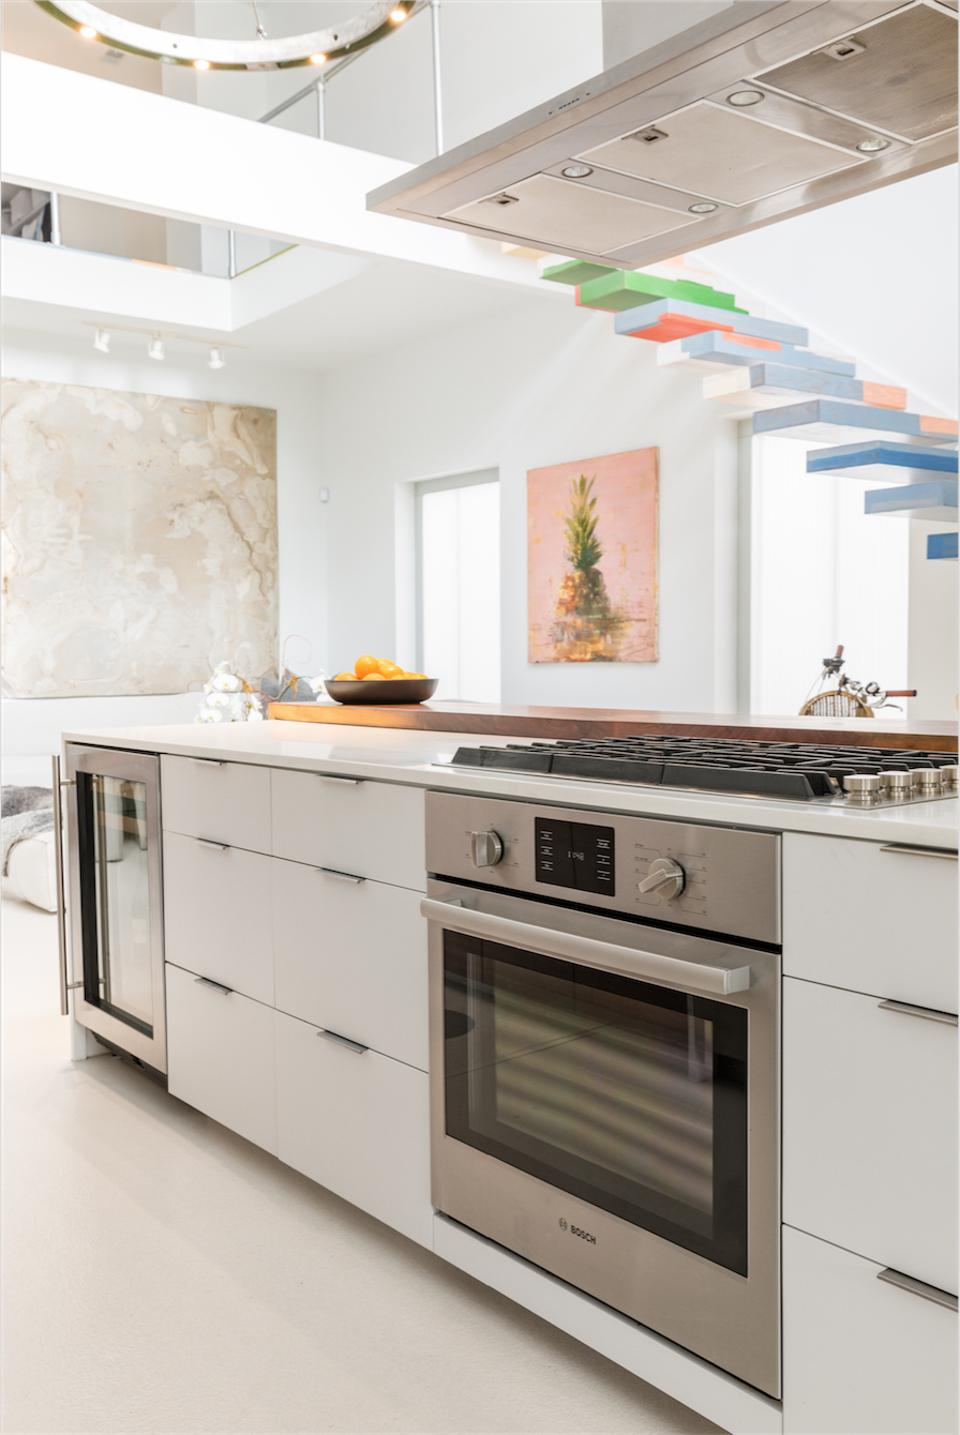 Contemporary kitchen with soaring 25-foot ceiling.